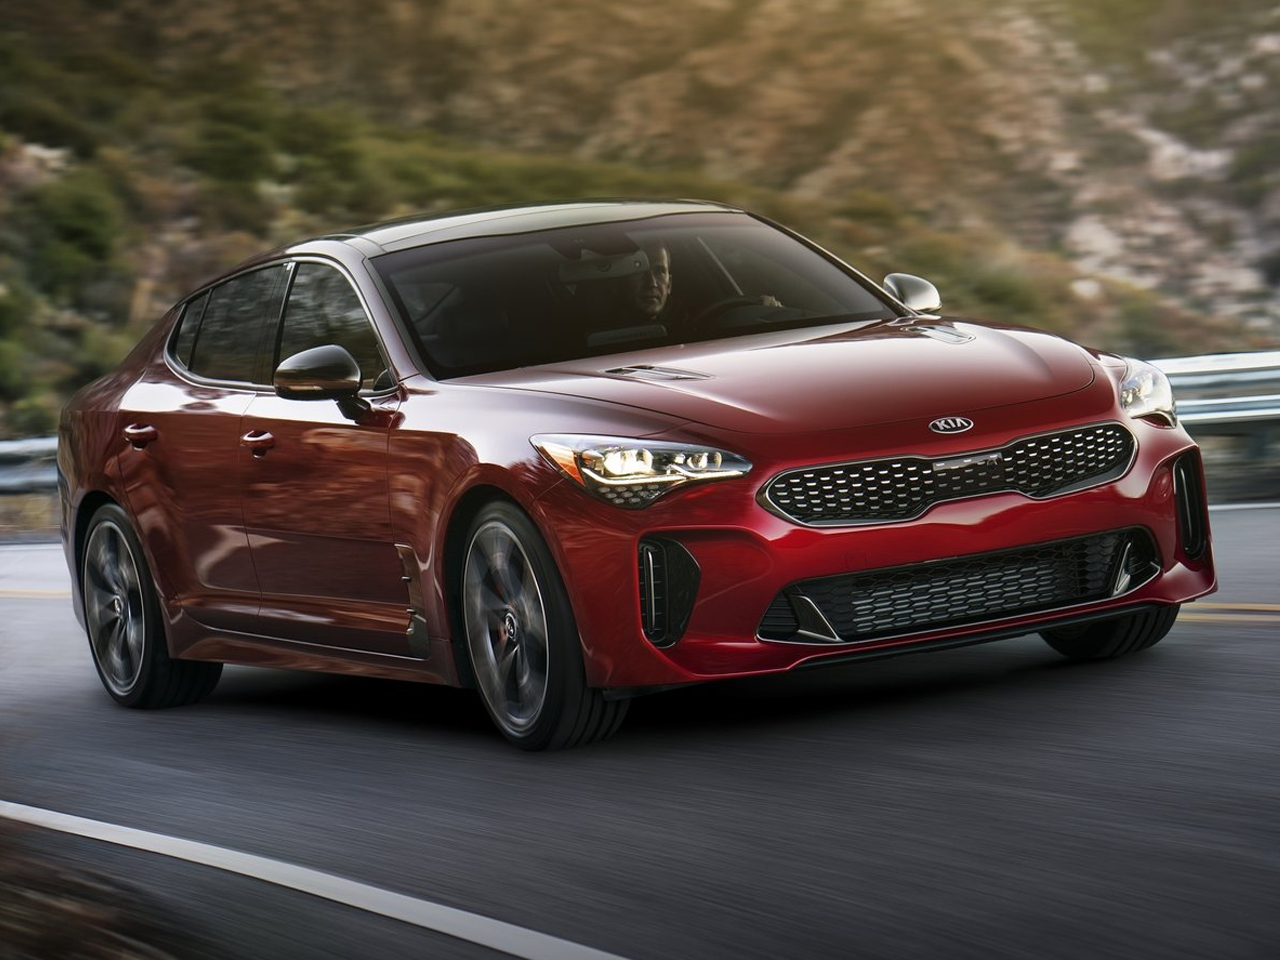 2020 Kia Gt Coupe Redesign and Concept